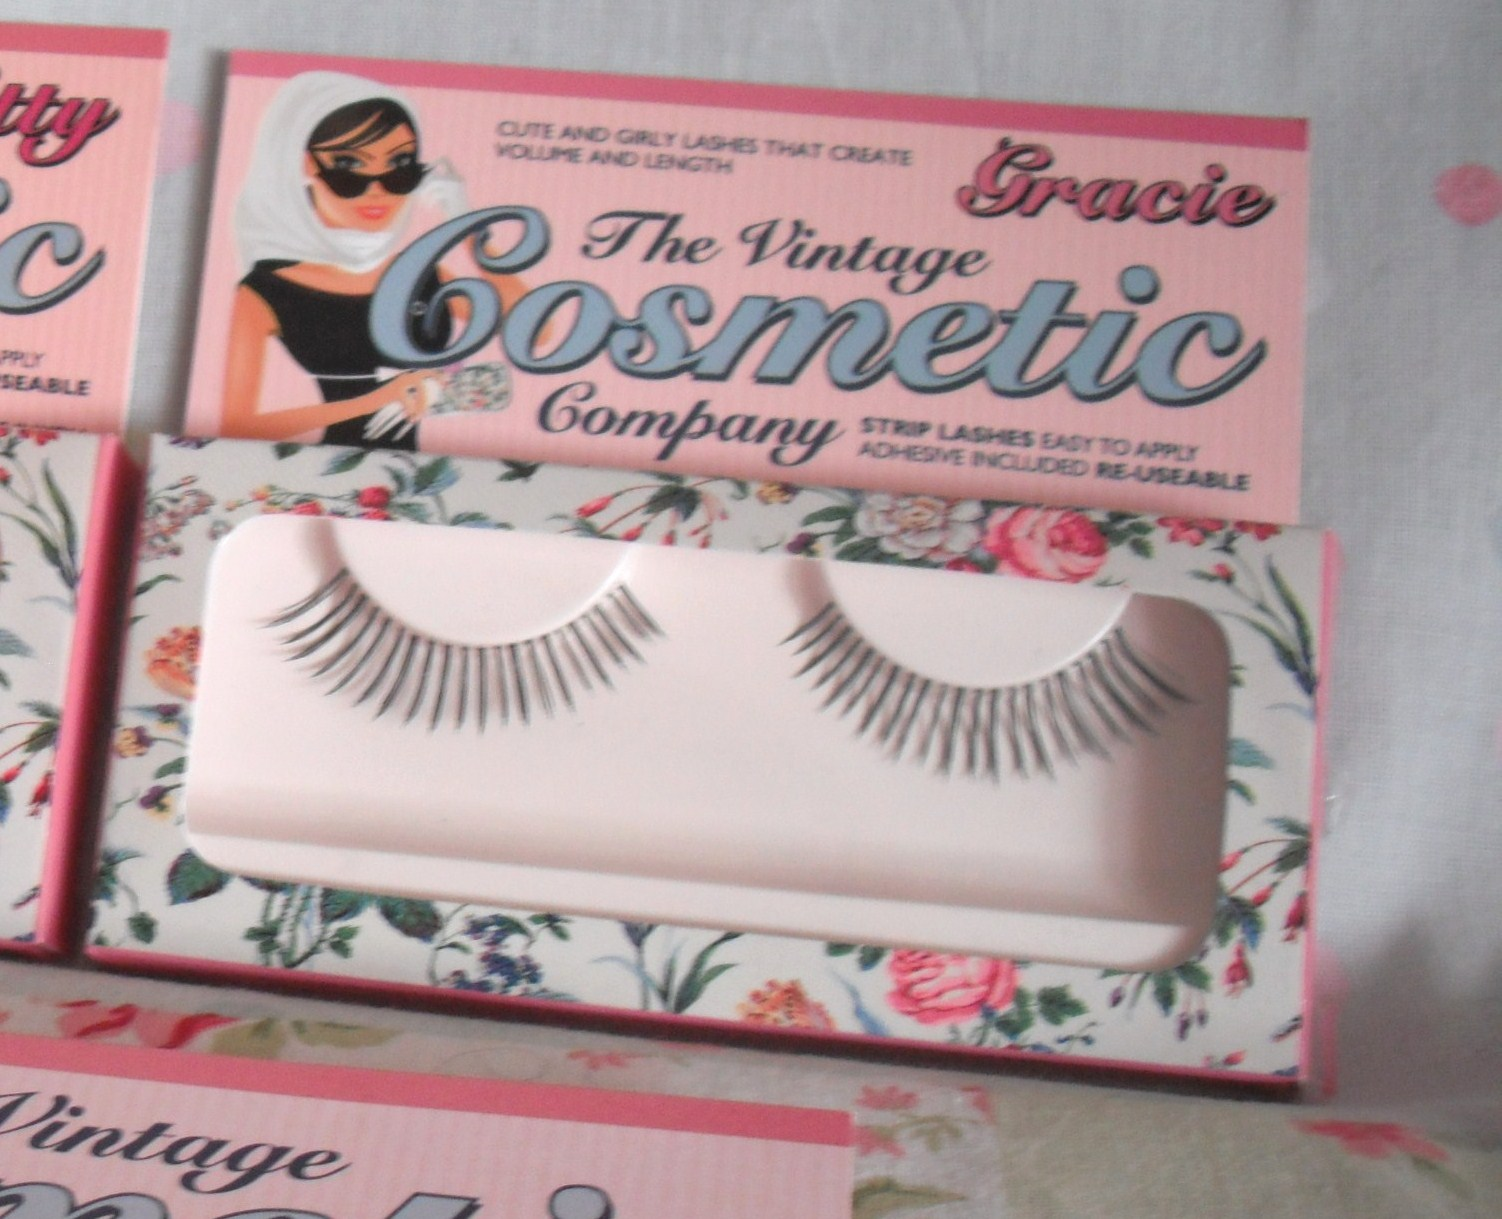 b8c0d532ee0 The Kitty lashes are designed to bring out the glamour puss in you! The  Gracie lashes can be used to create a cute and girly look.